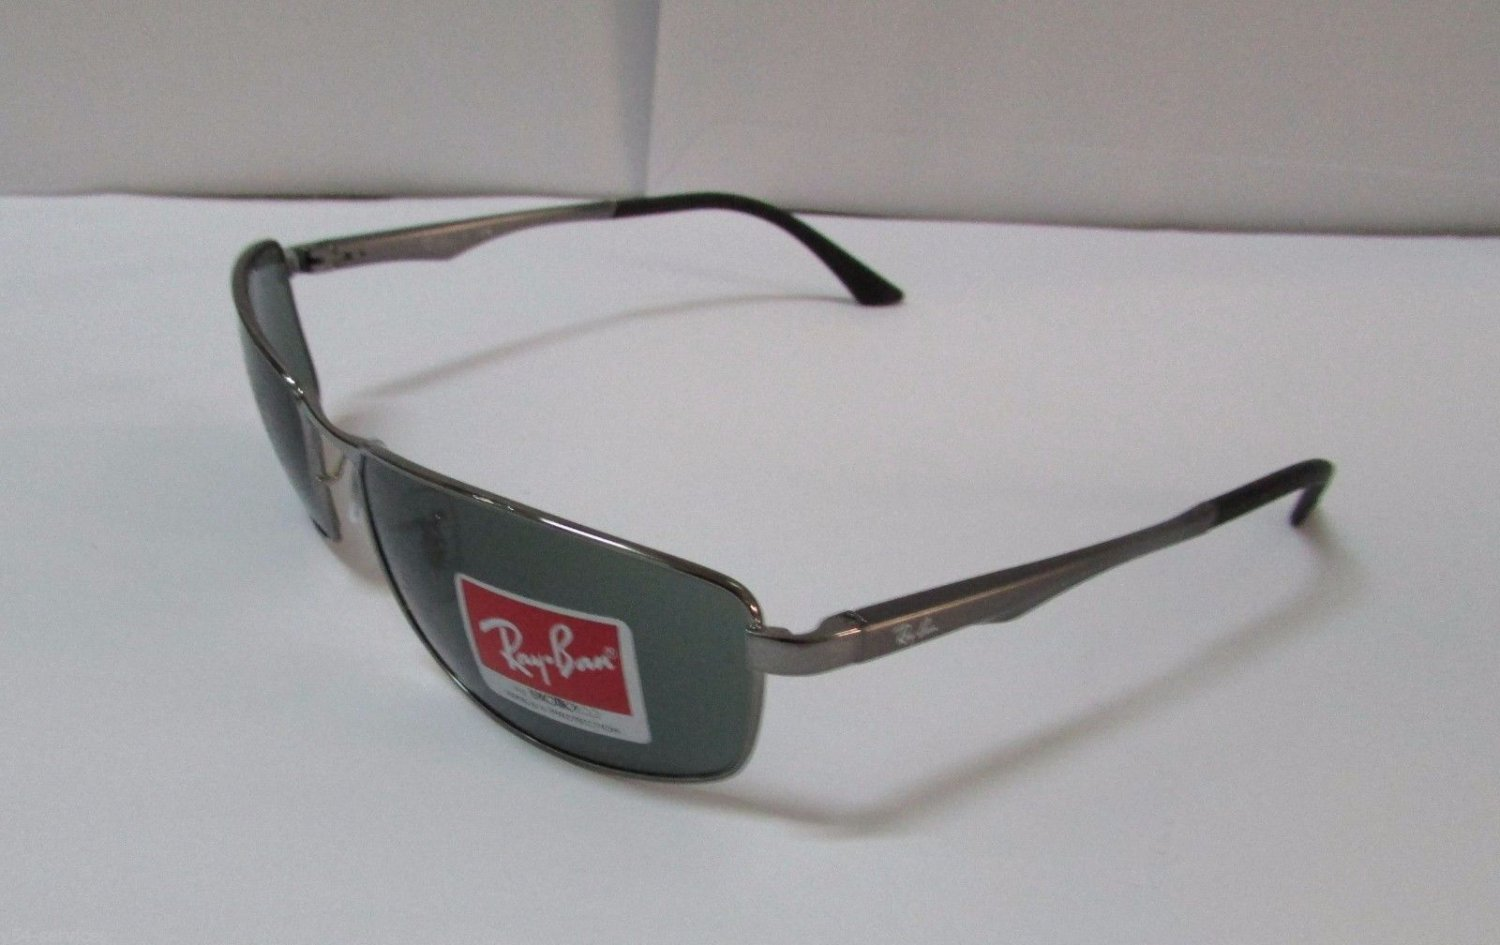 Ray-Ban Sunglasses Gunmetal 3498 004/71 Frame Green Men NEW & 100% Original